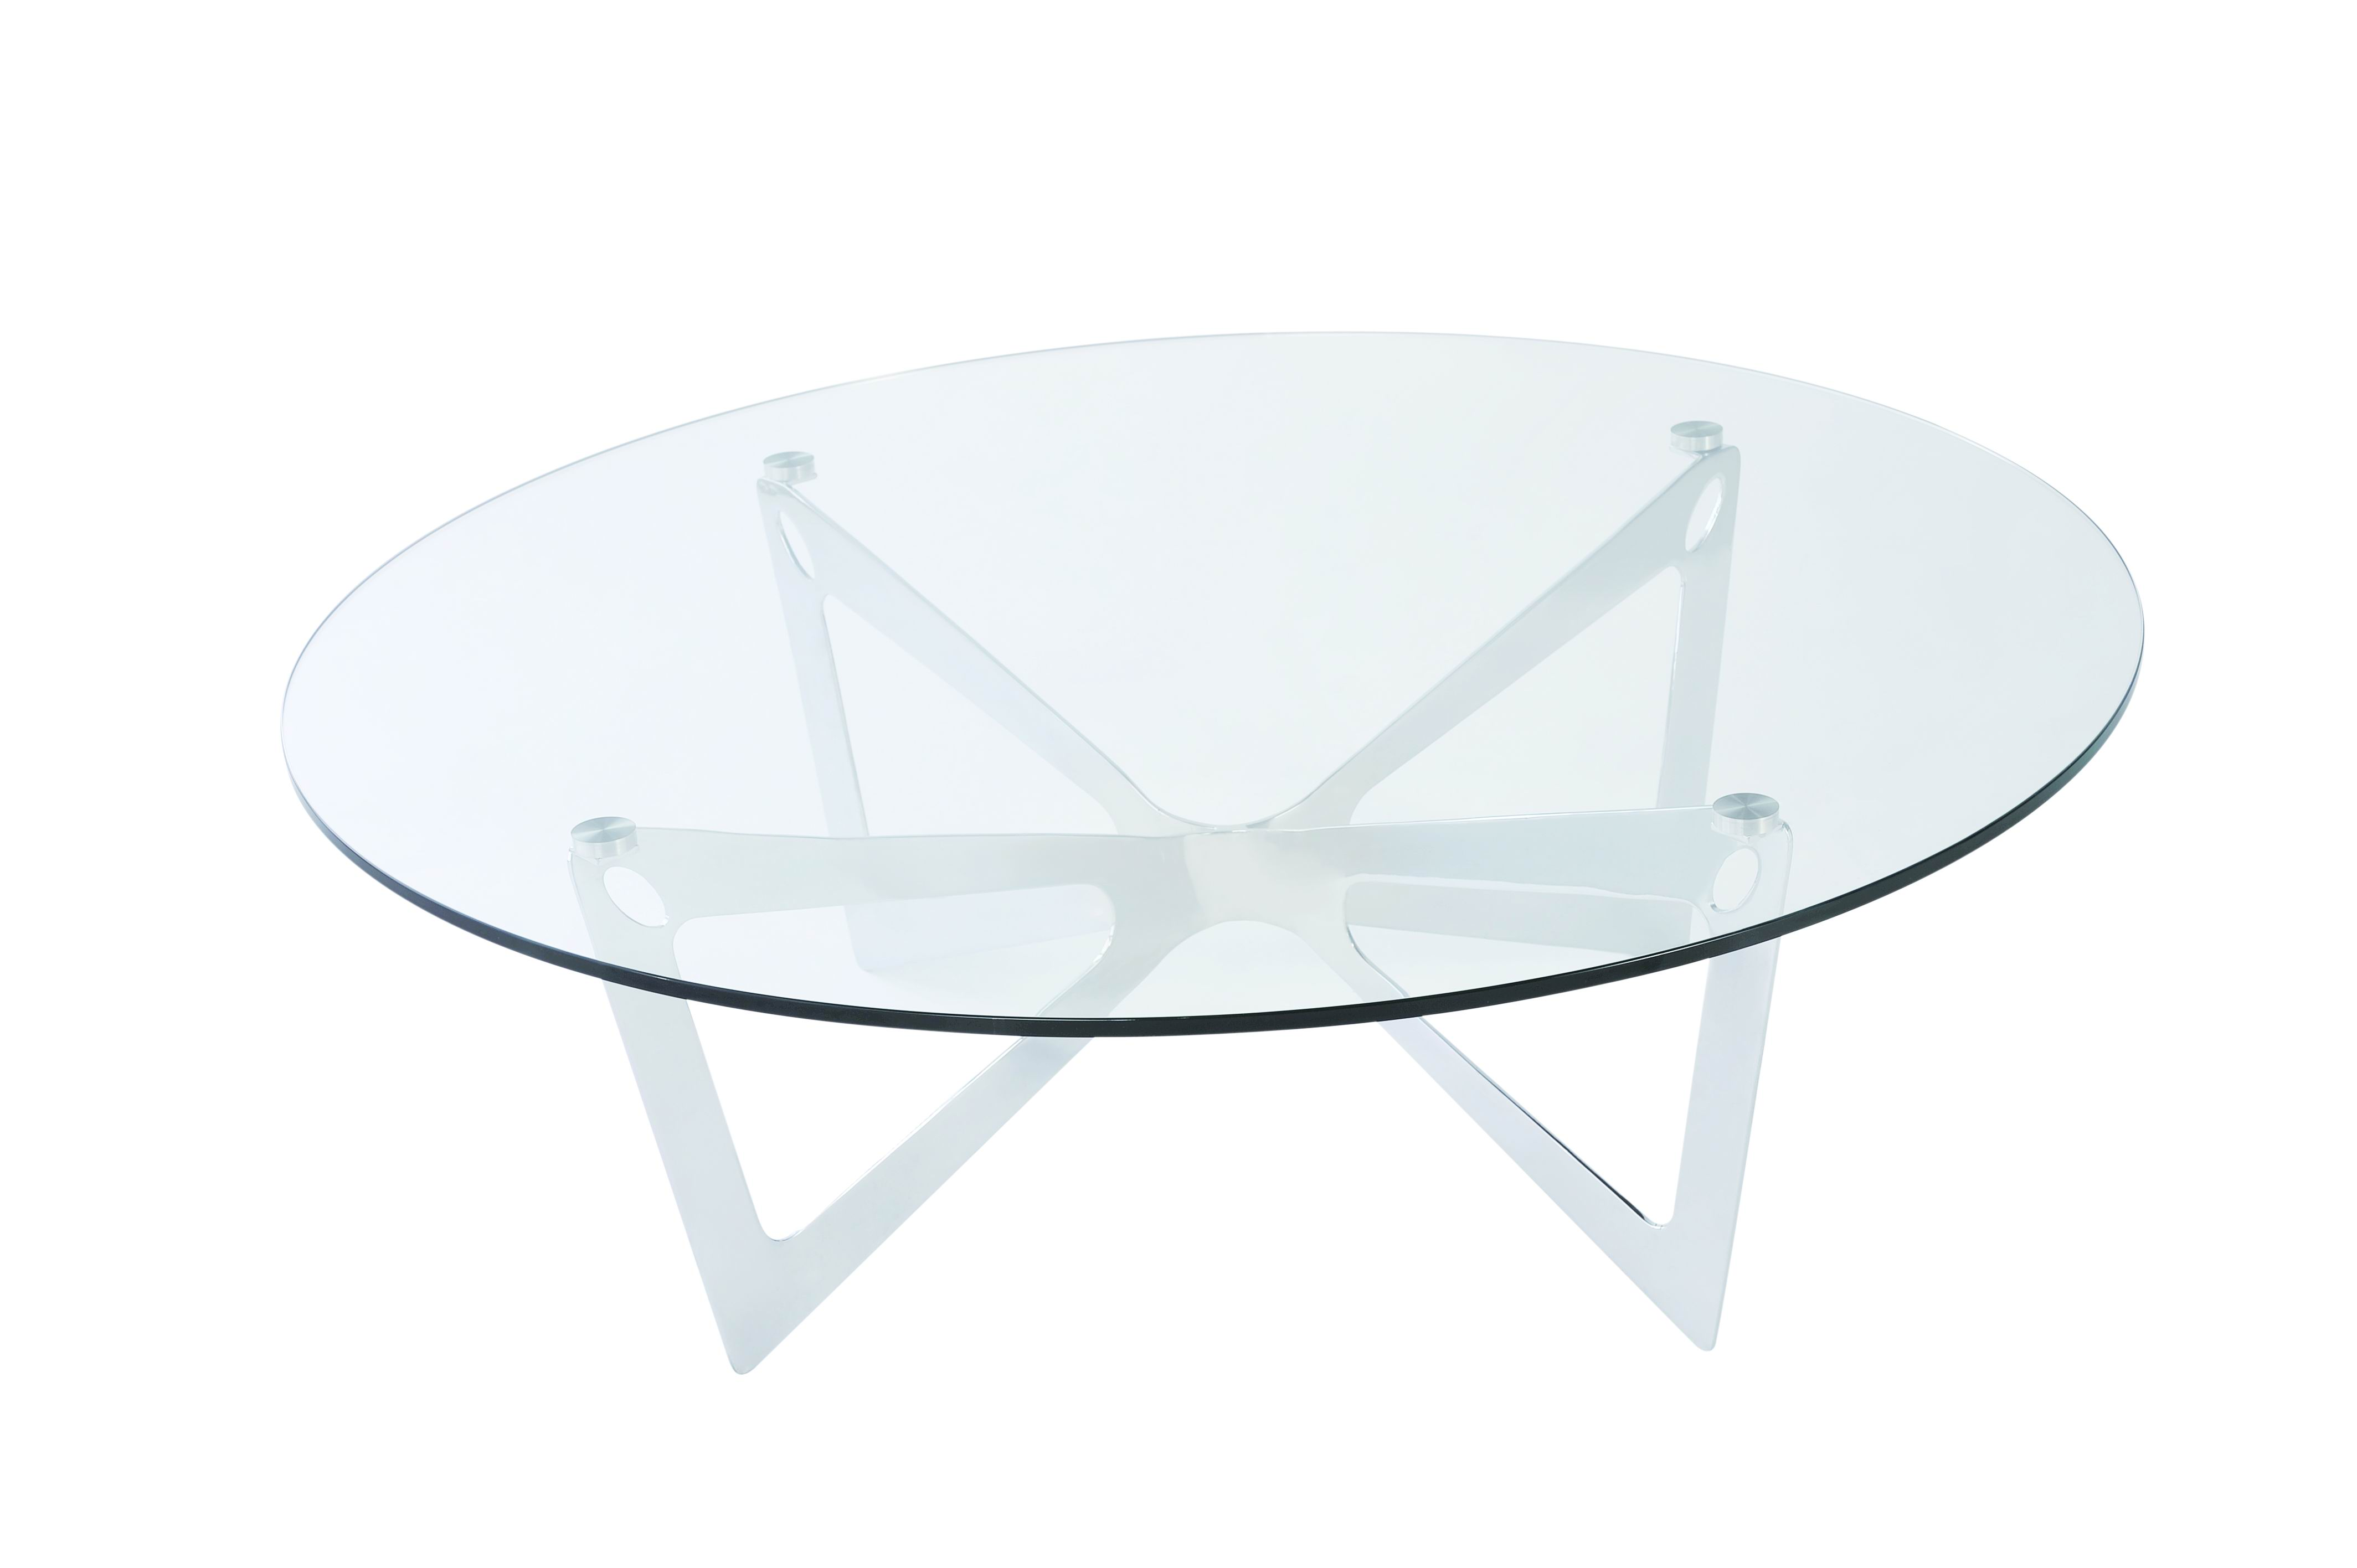 Contemporary Round Glass Top Coffee Table Rustic Adjustable Coffee Table Round Glass Great Coffee Table With Glass (View 3 of 10)